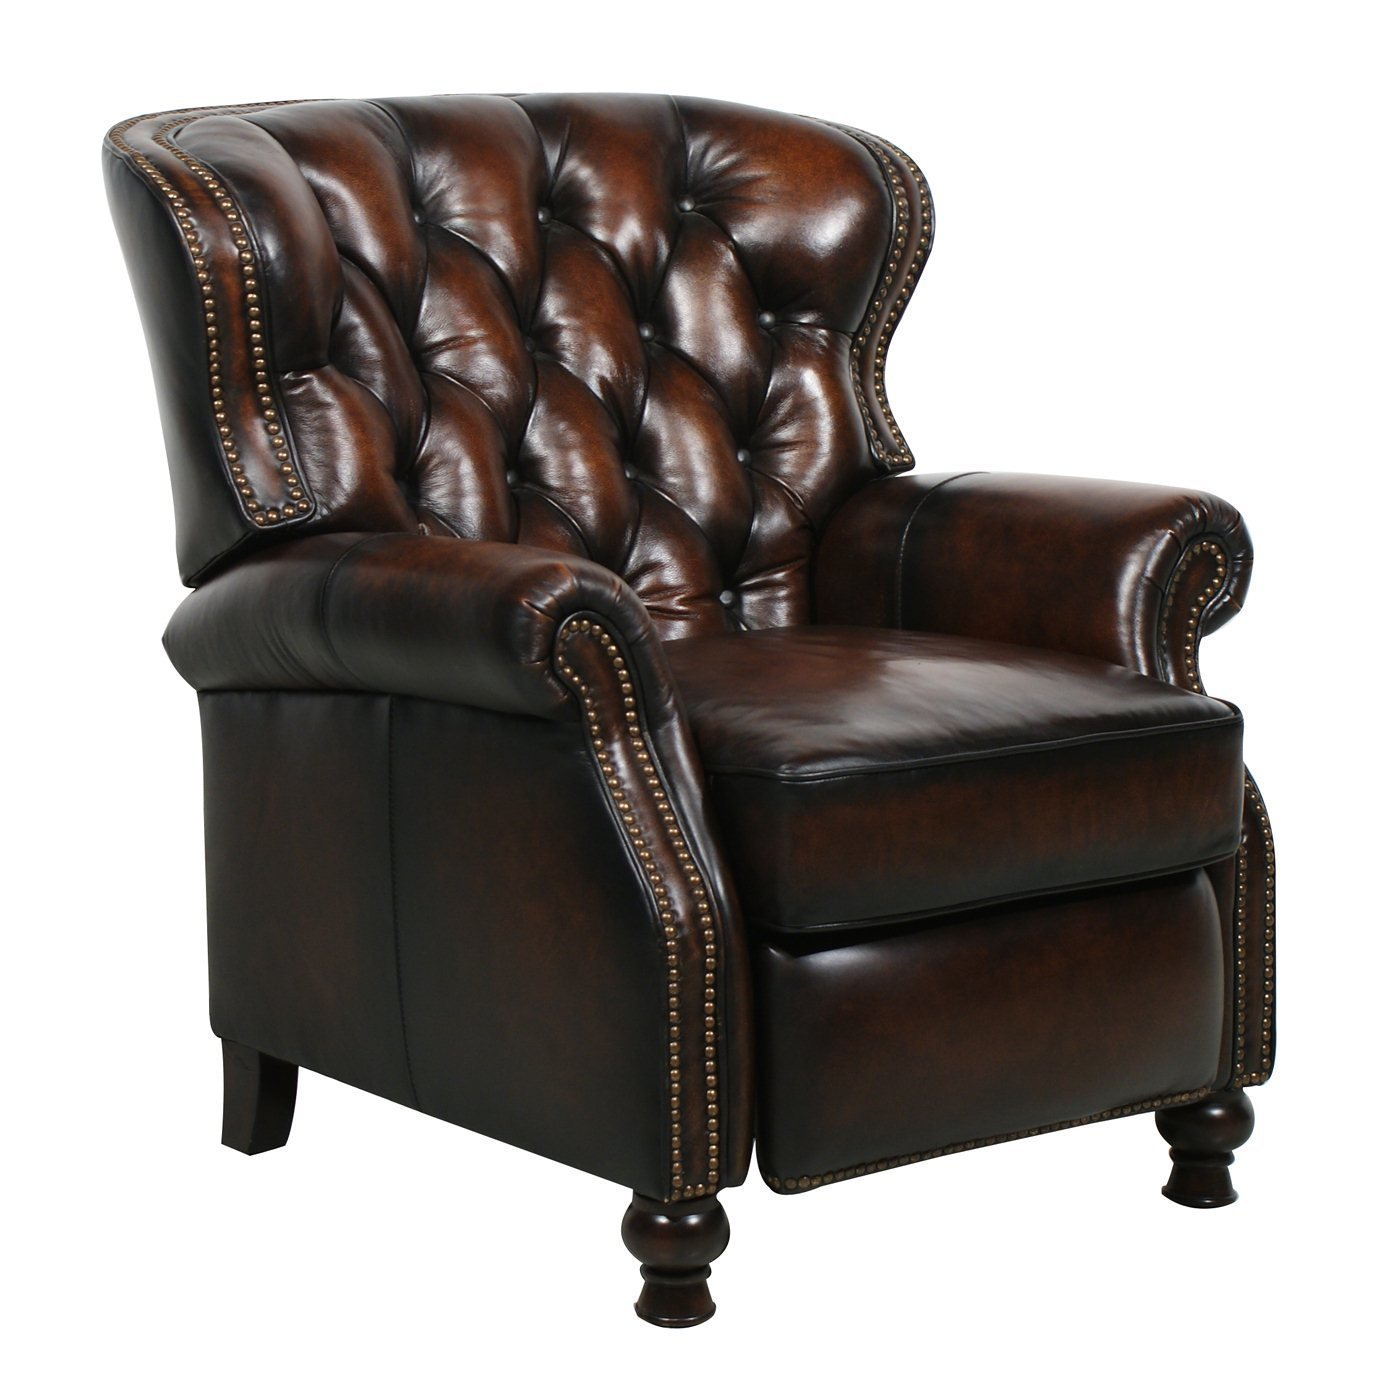 Furniture & Rug Leather Recliner With Massage